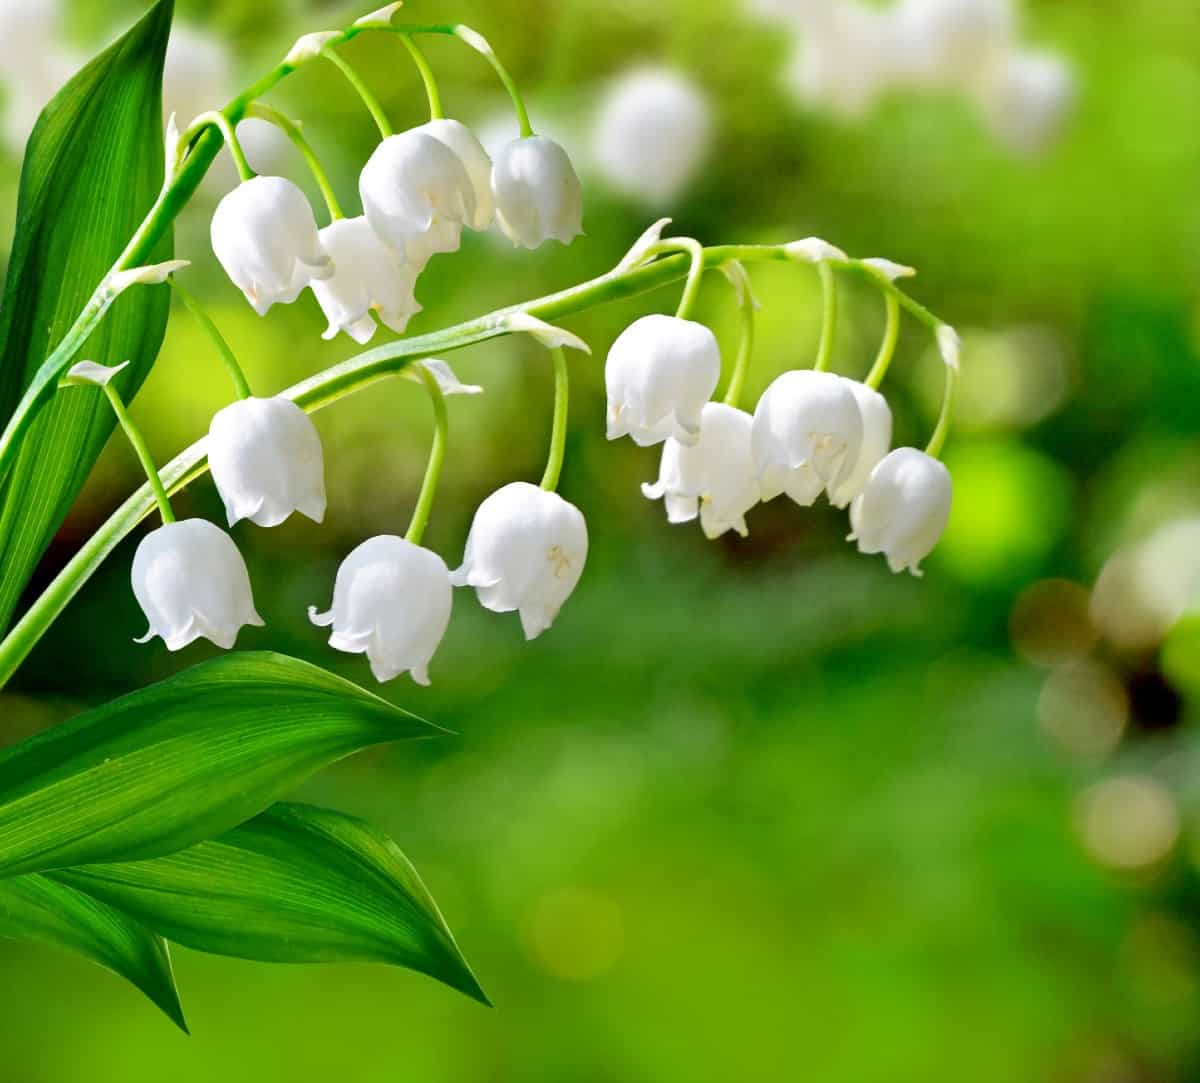 lily of the valley has a delightful fragrance